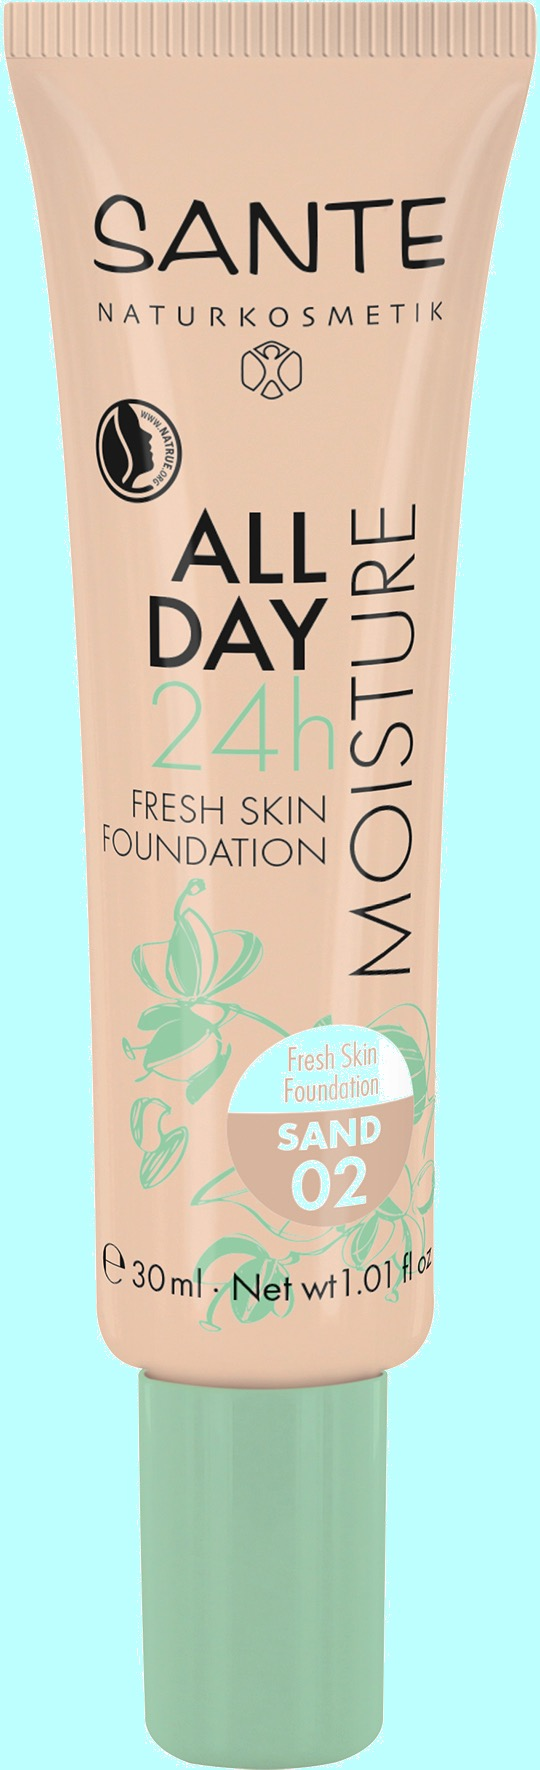 All Day 24h Fresh Skin Foundation von Santa